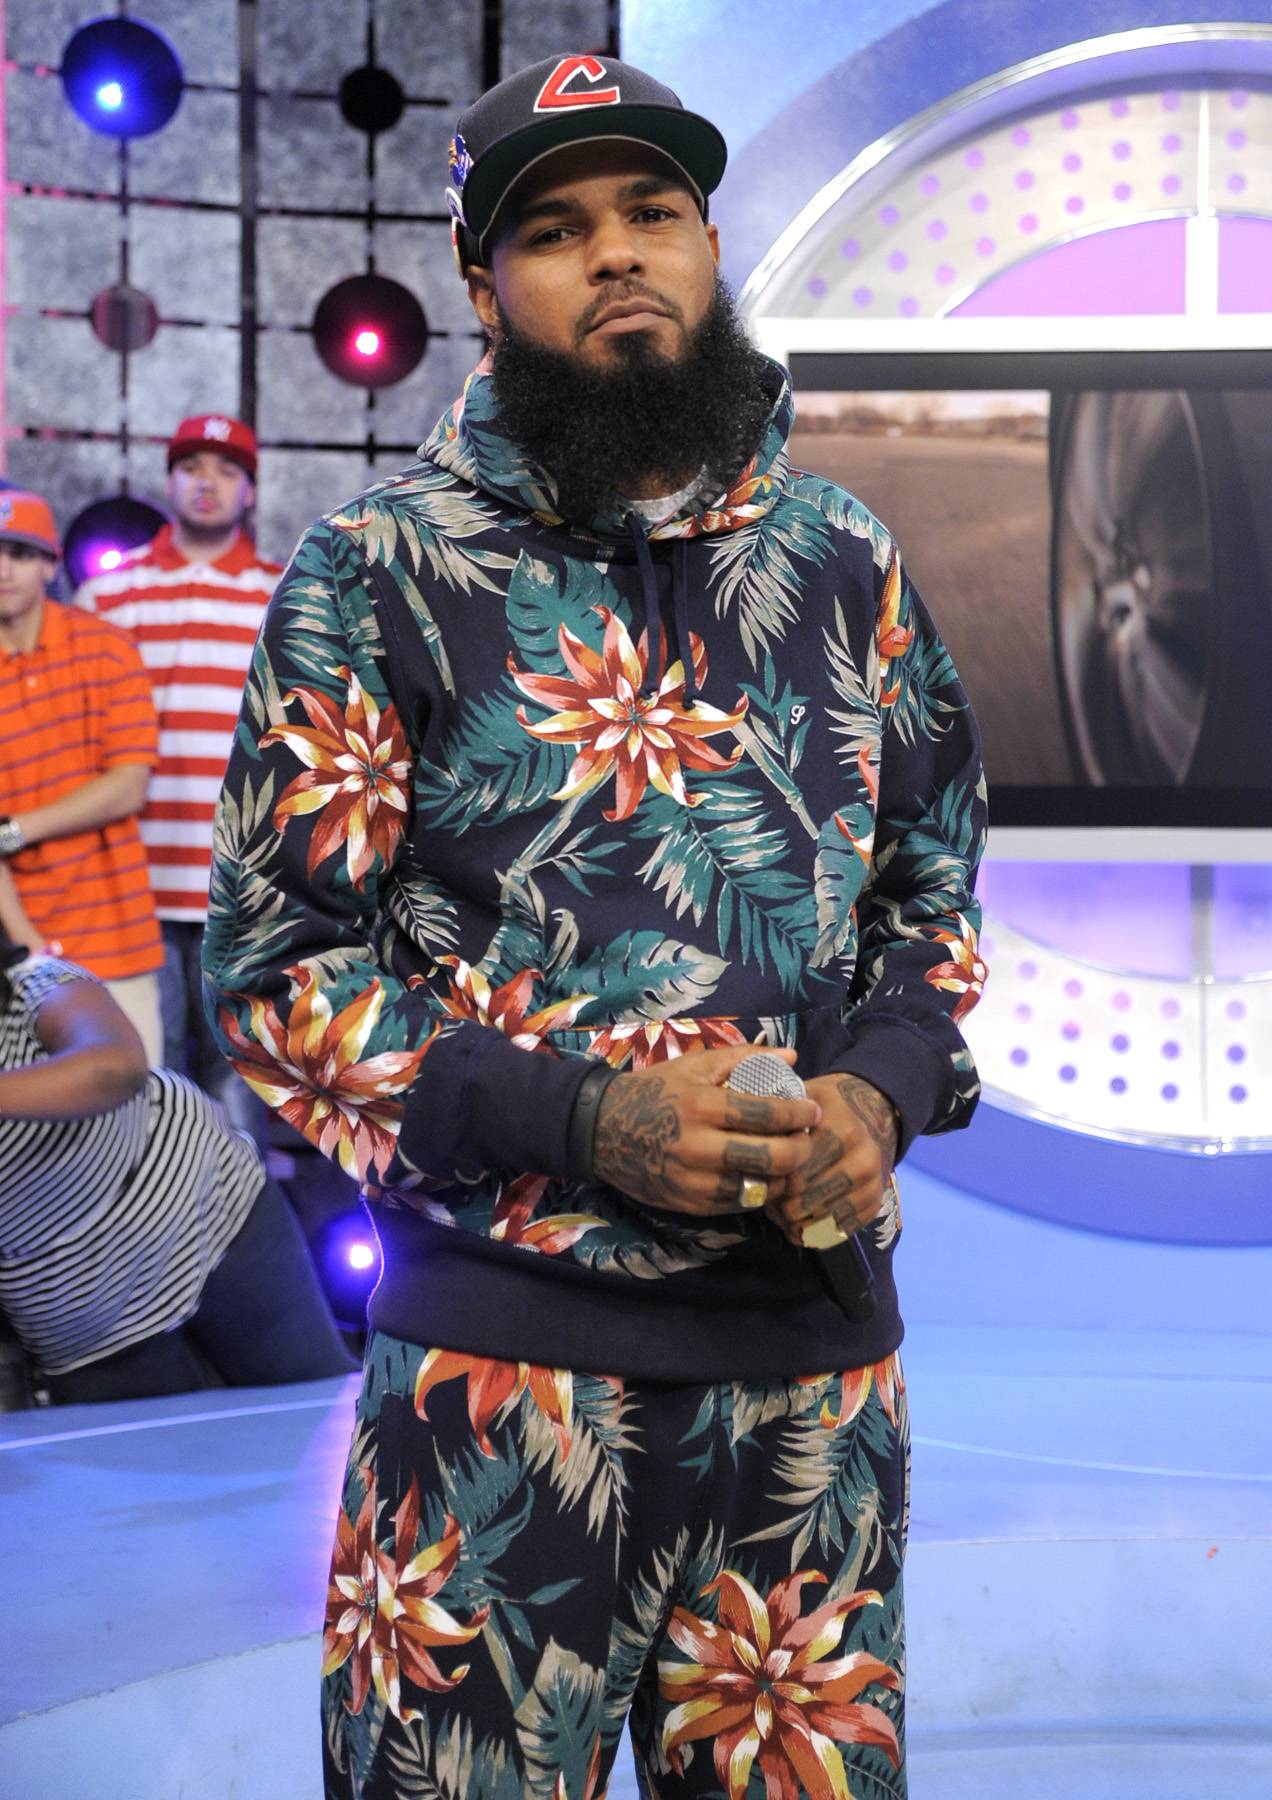 MMG Forever - Stalley of MMG at 106 & Park, April 17, 2012. (Photo: John Ricard/BET)